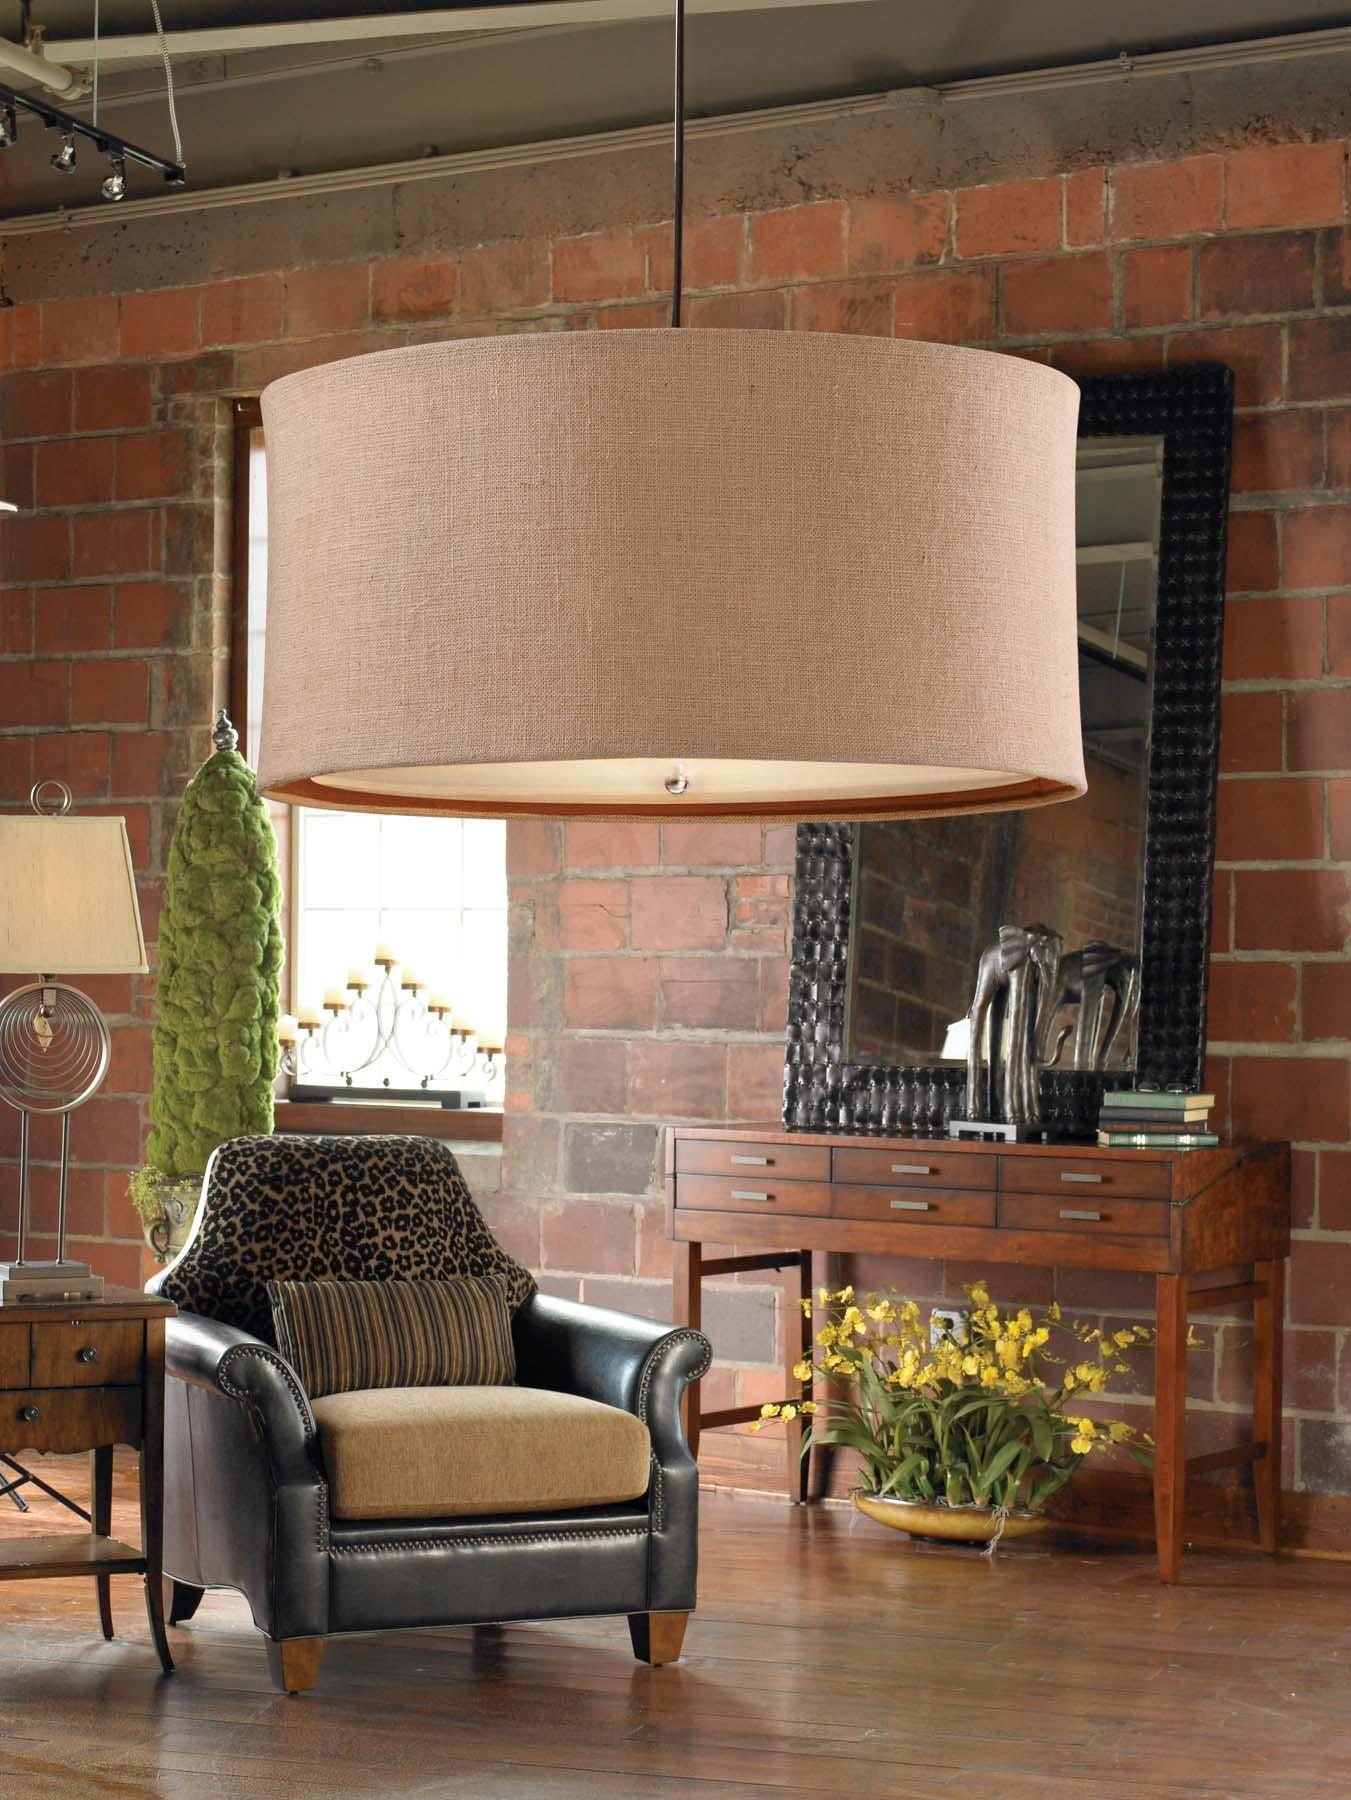 Uttermost Lighting Fixtures Alamo 3 Light Hanging Shade - Item Number: 21932